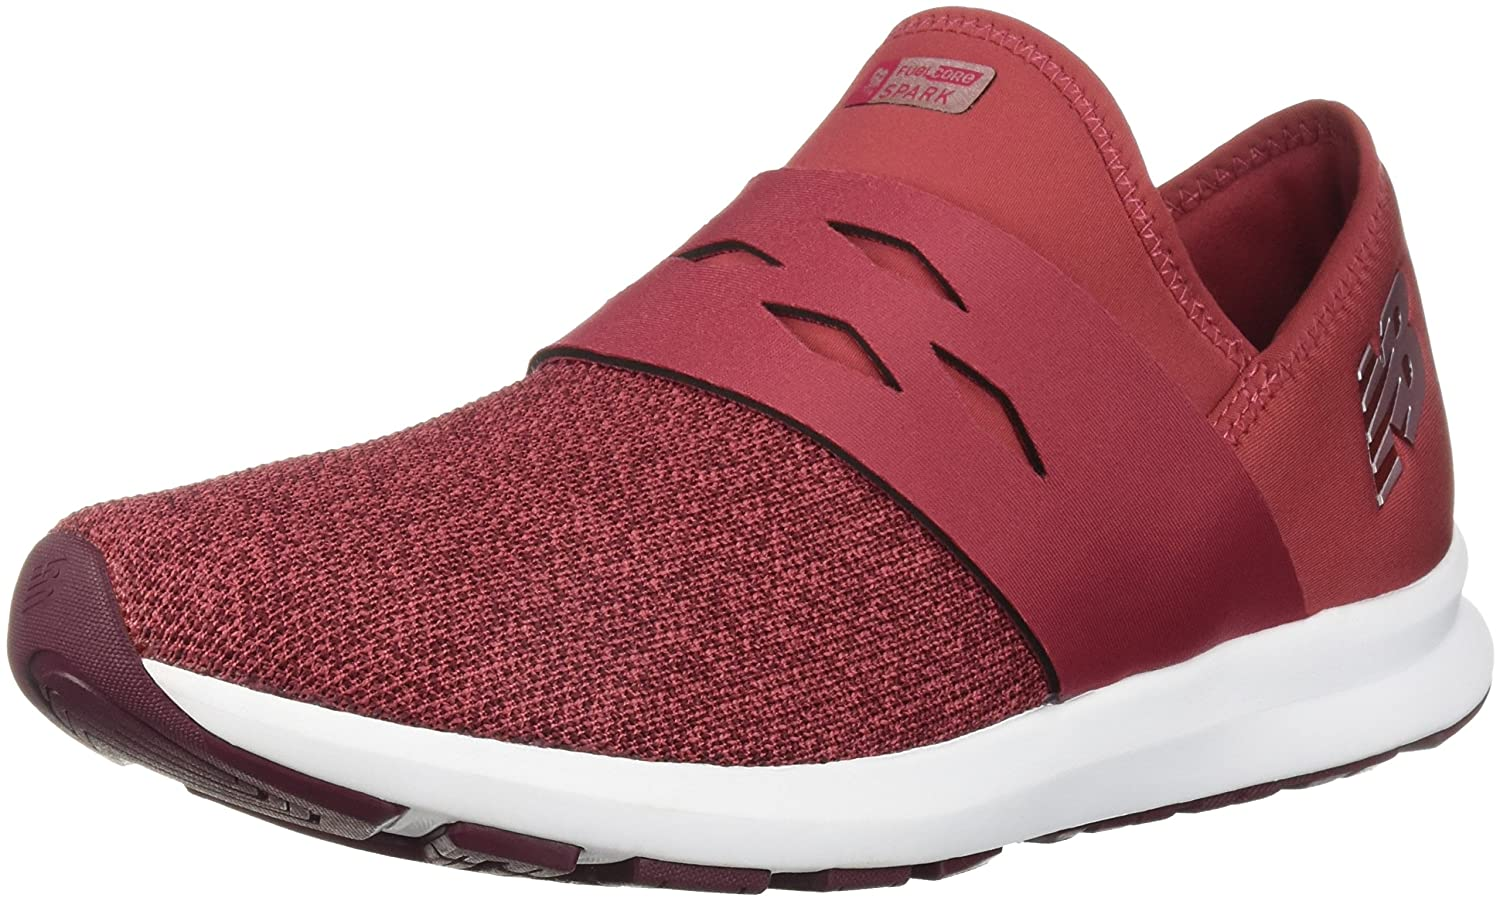 New Balance Woherren Spk V1 FuelCore Cross Trainer rot 10.5 D US